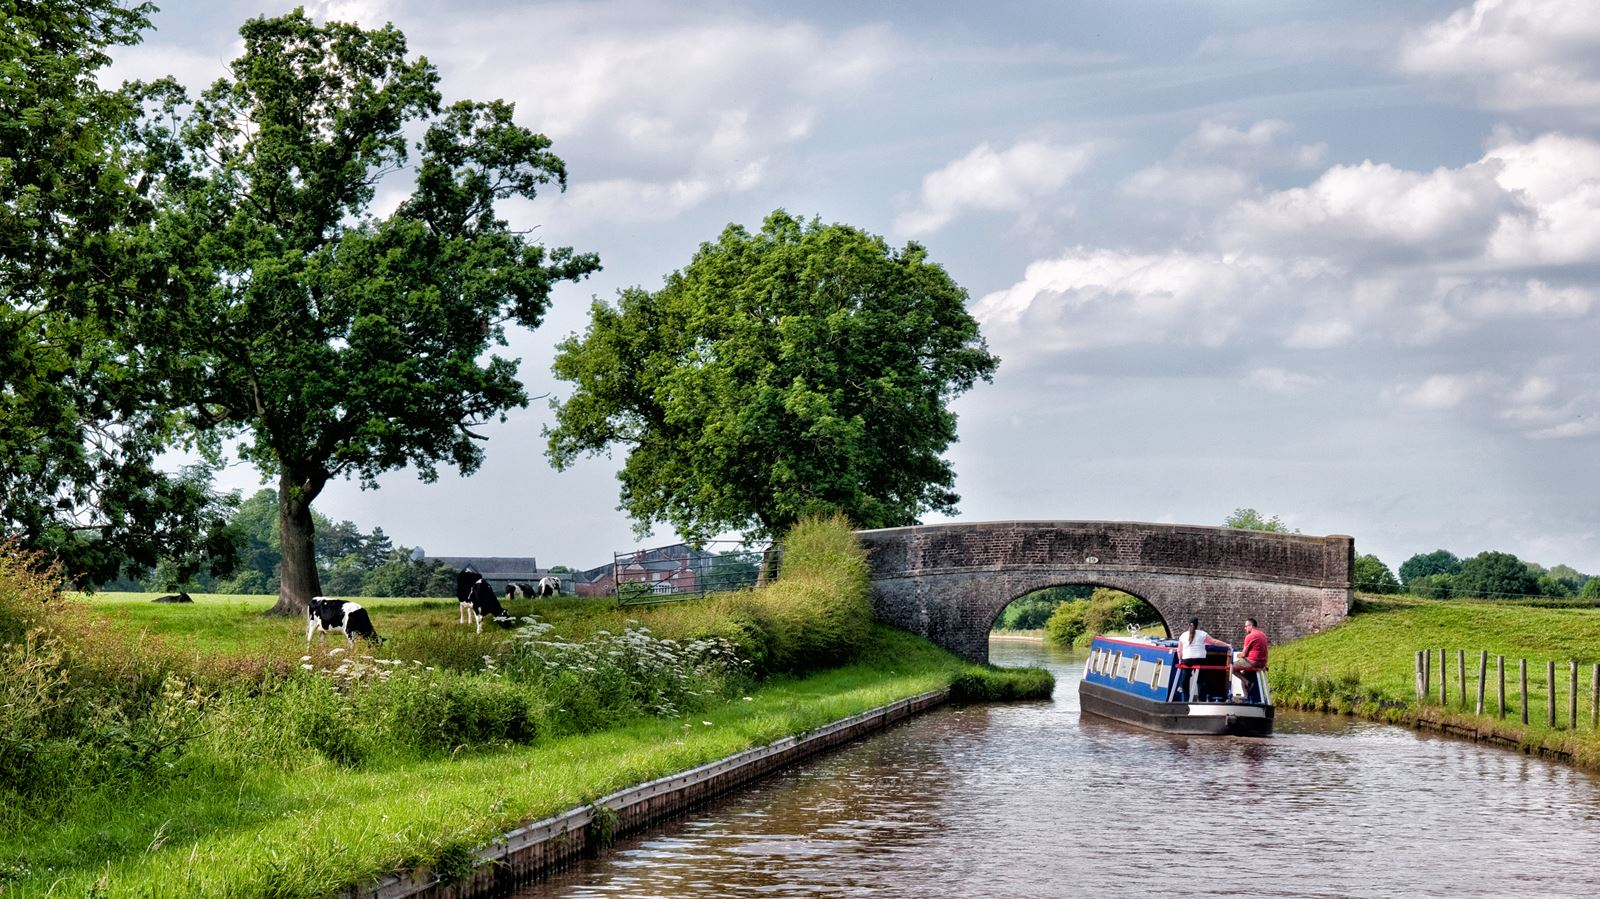 Idyllic rural Cheshire canal scene along the Middlewich Arm of the Shropshire Union canal